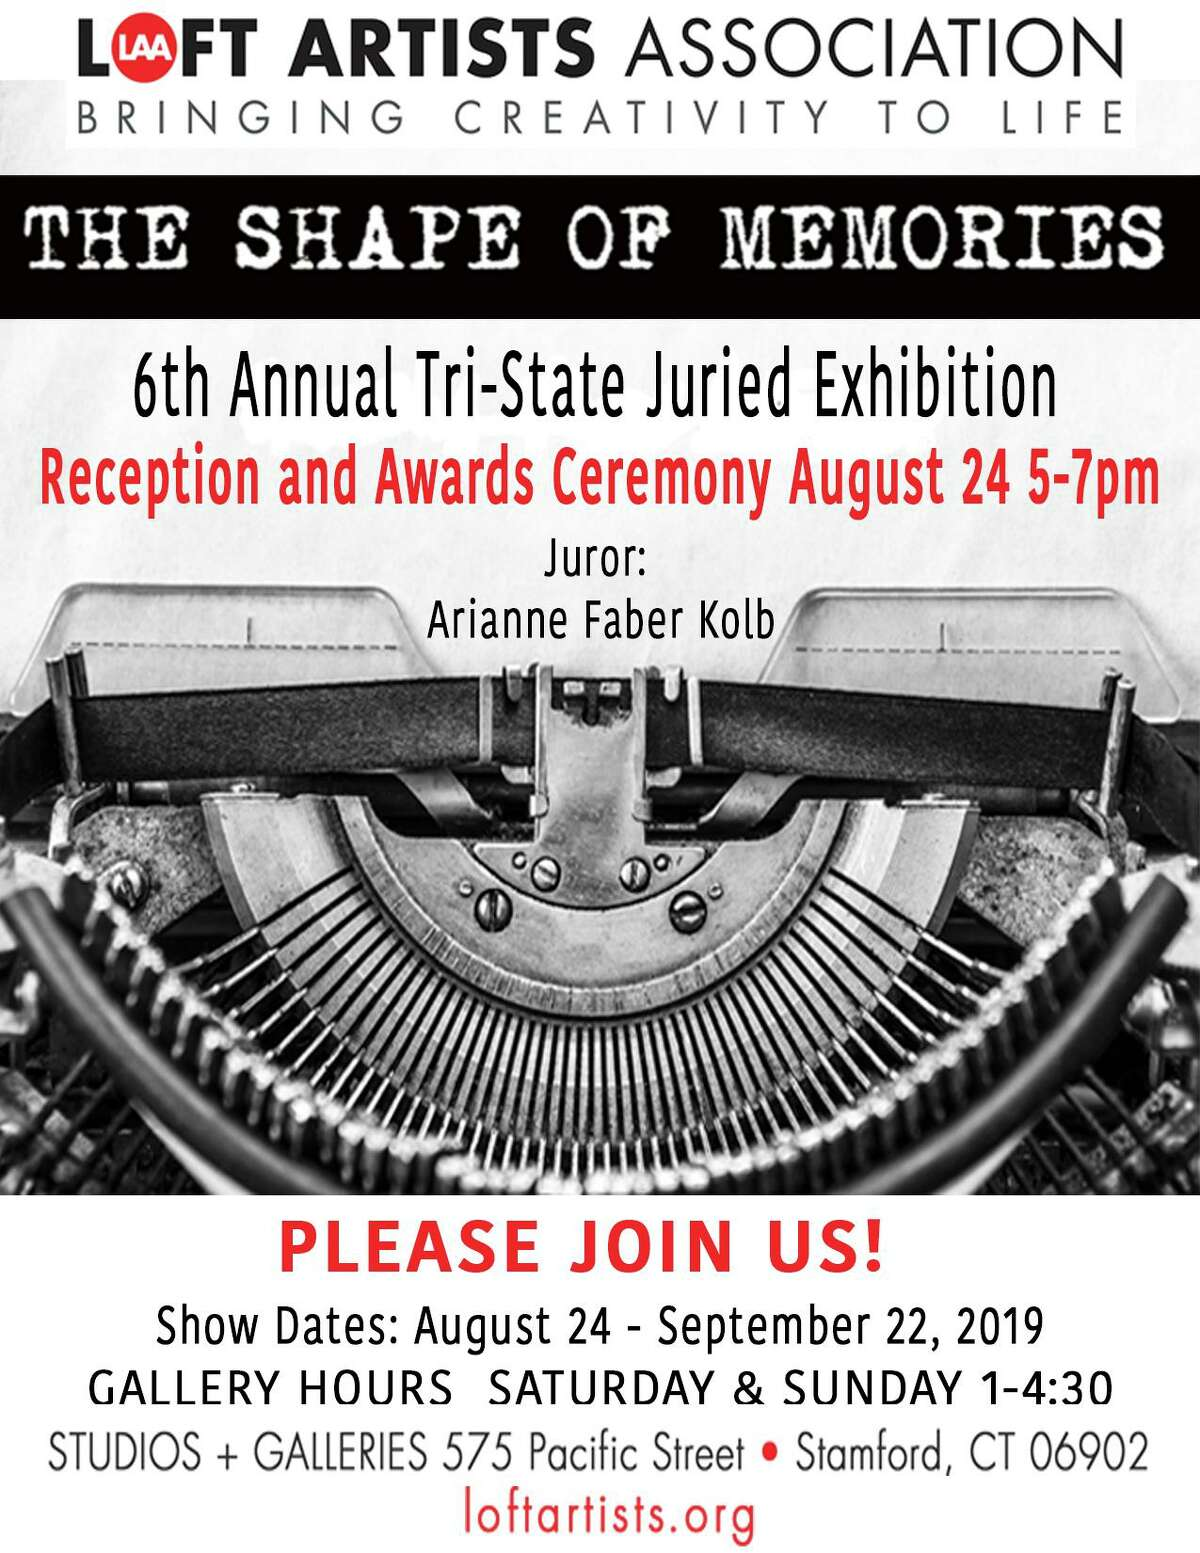 Stamford's Loft Artists Association's sixth annual Tri-state juried exhibition,